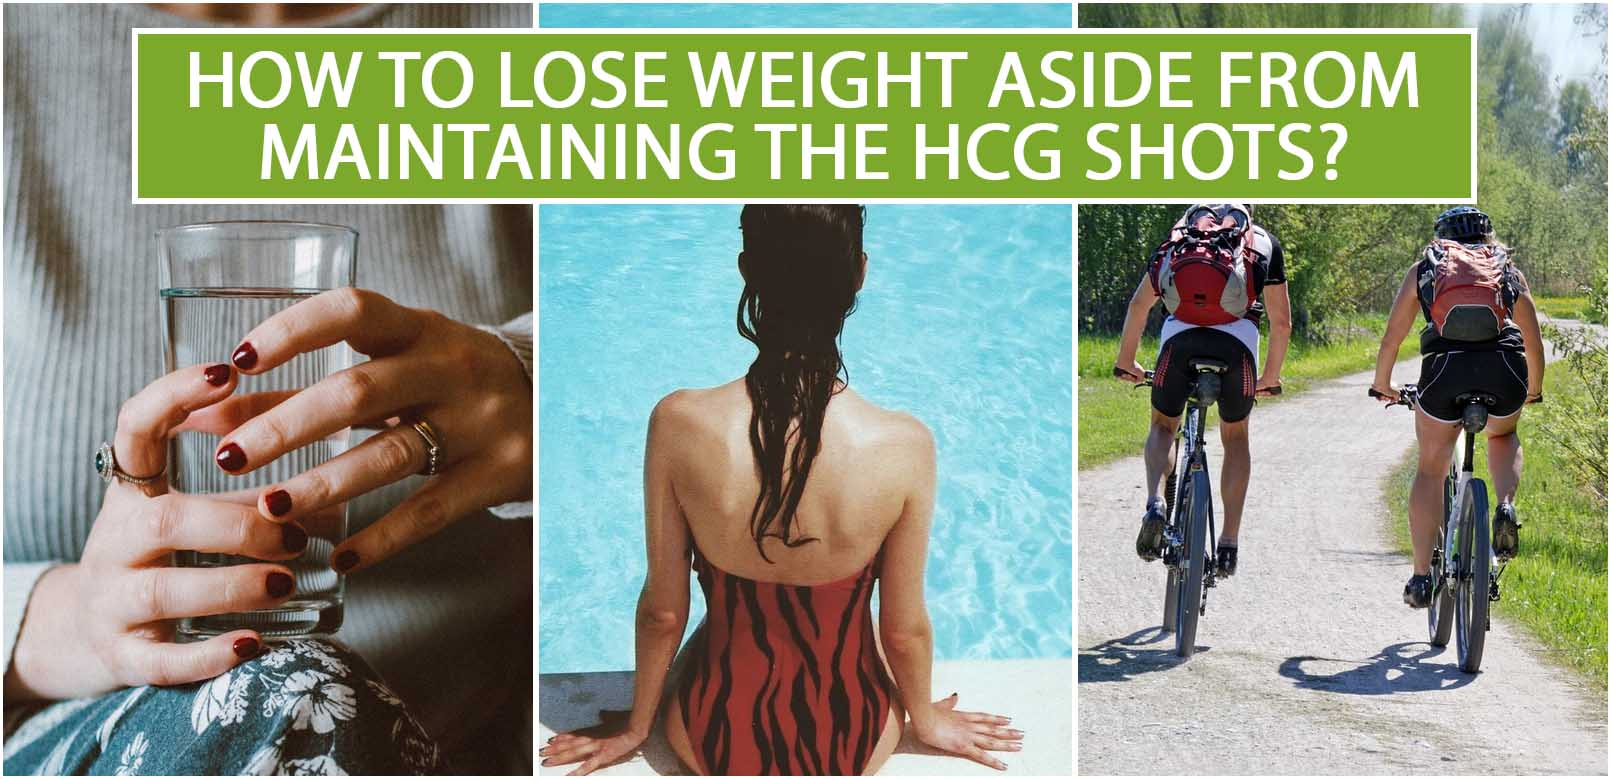 HOW TO LOSE WEIGHT ASIDE FROM MAINTAINING THE HCG SHOTS